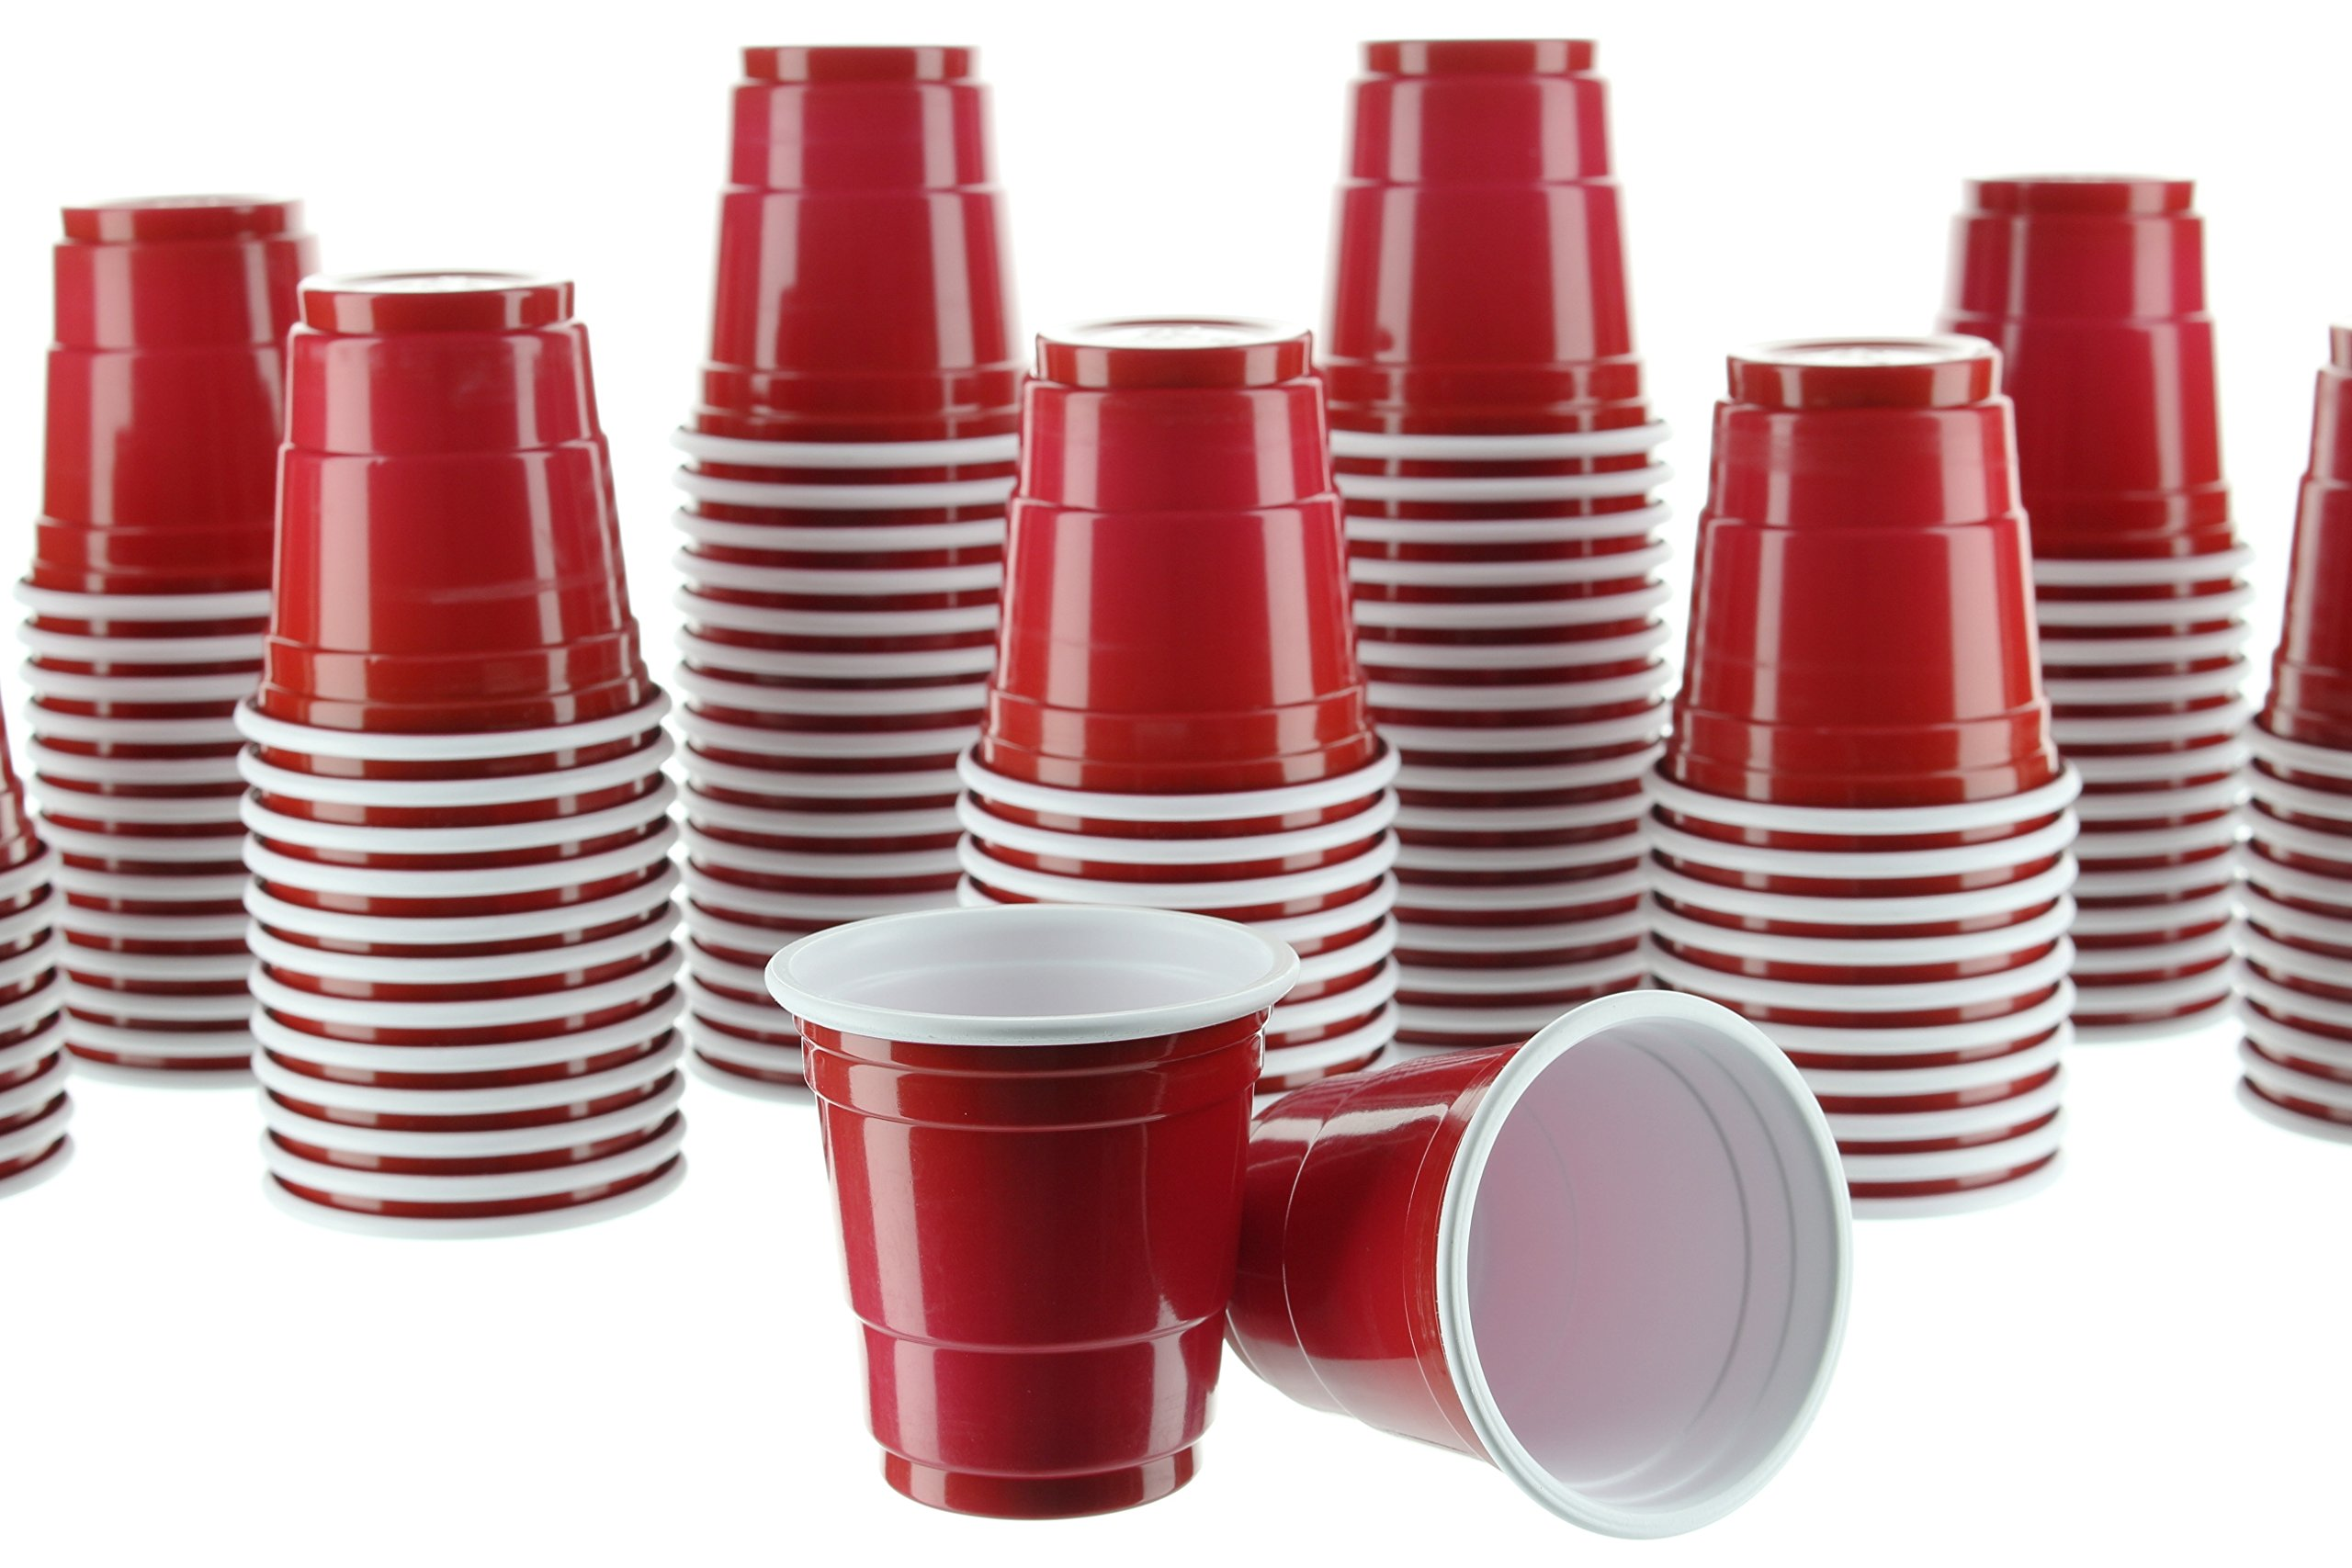 cups disposable shot plastic glasses bomb jager bargains mini jello party pong beer serving cup glass perfect tastings shots pack